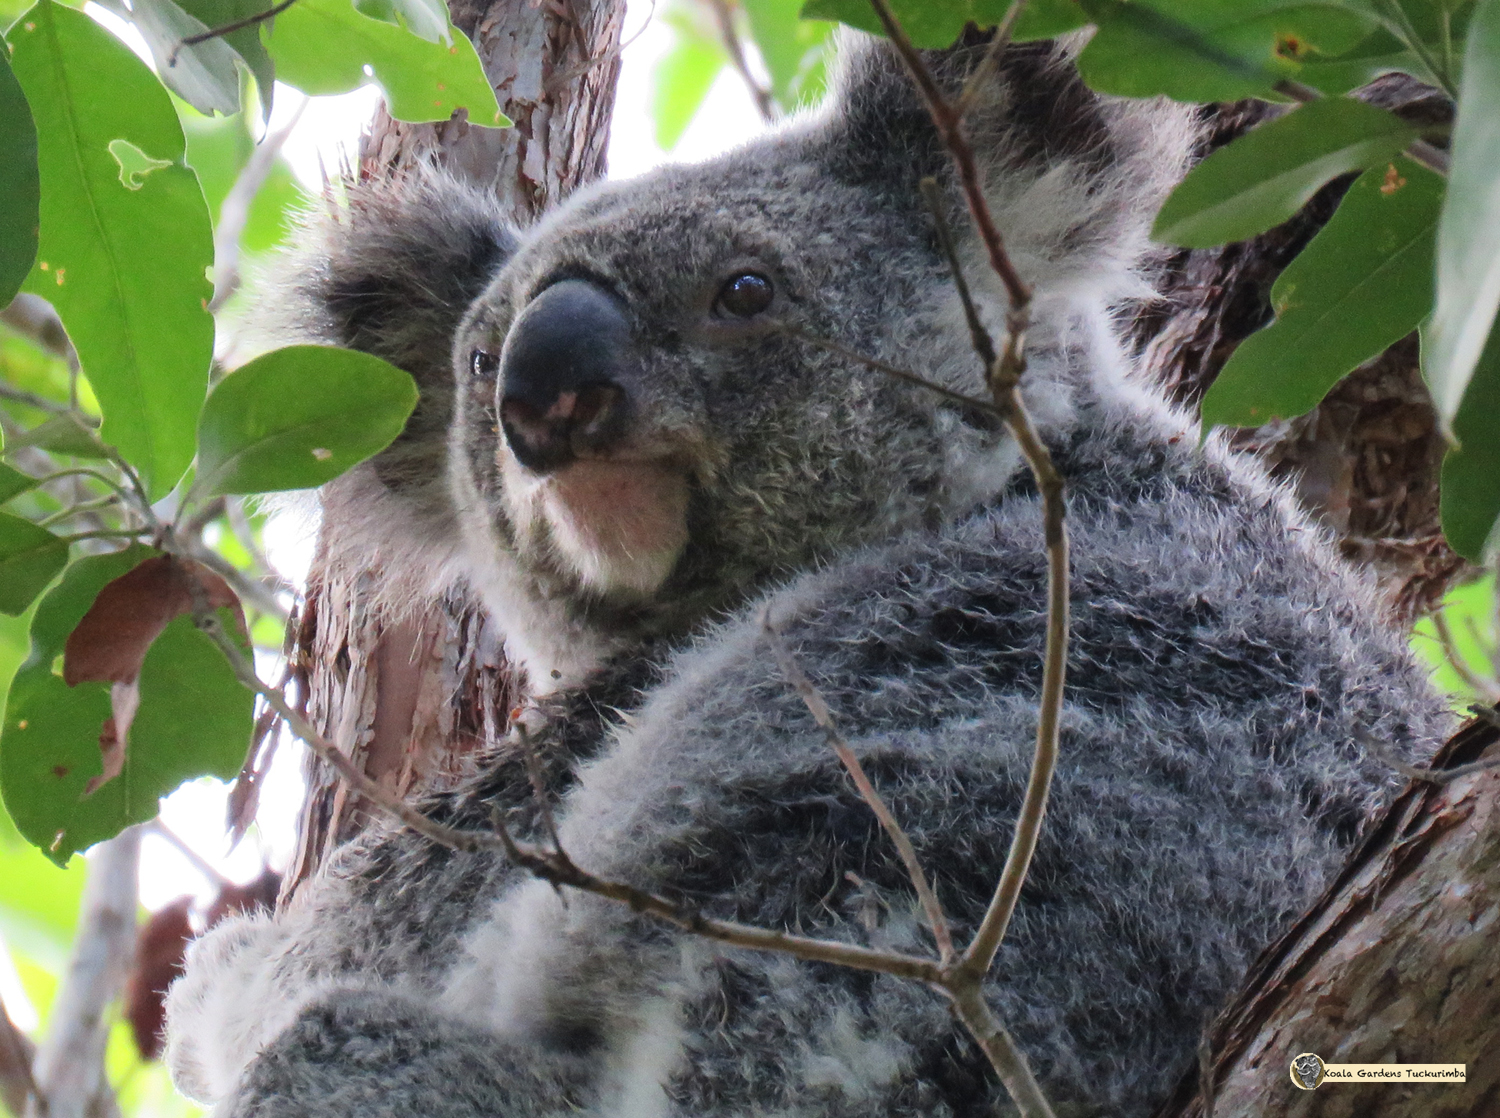 Photo of the real live wild koala Mist